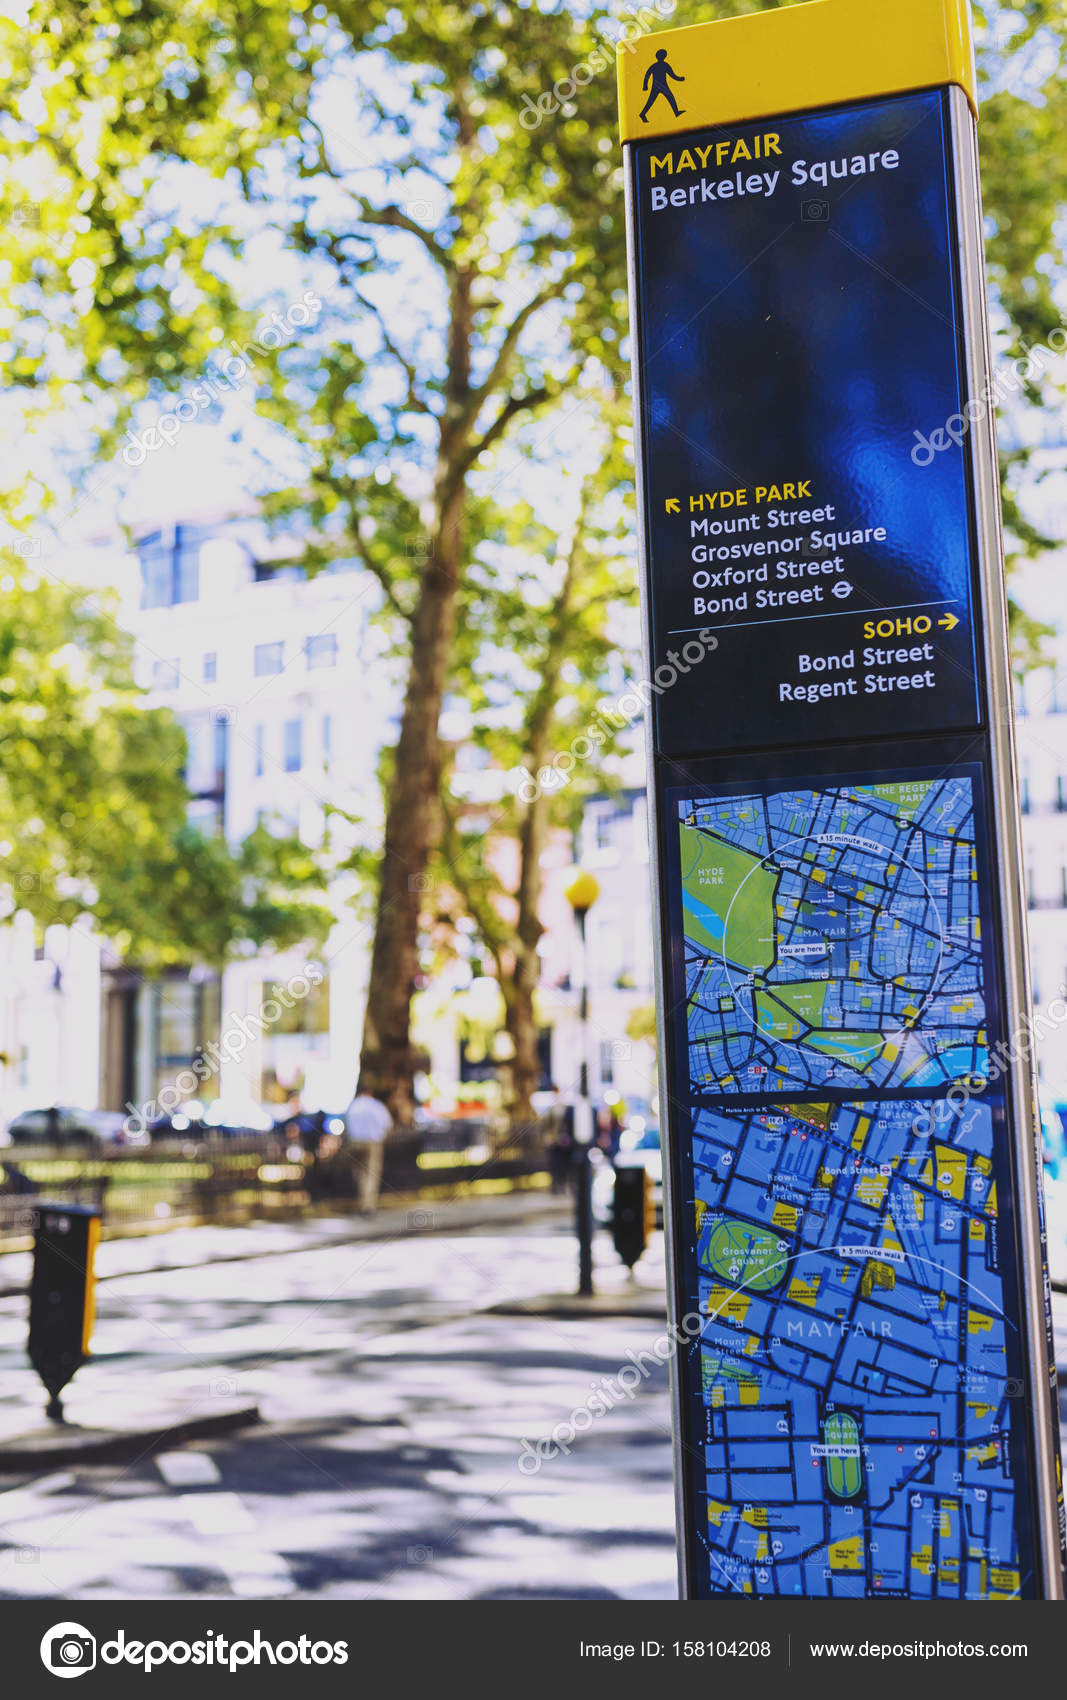 Street Map Of London City Centre.Mayfair Road Sign With Map In London City Centre Stock Editorial